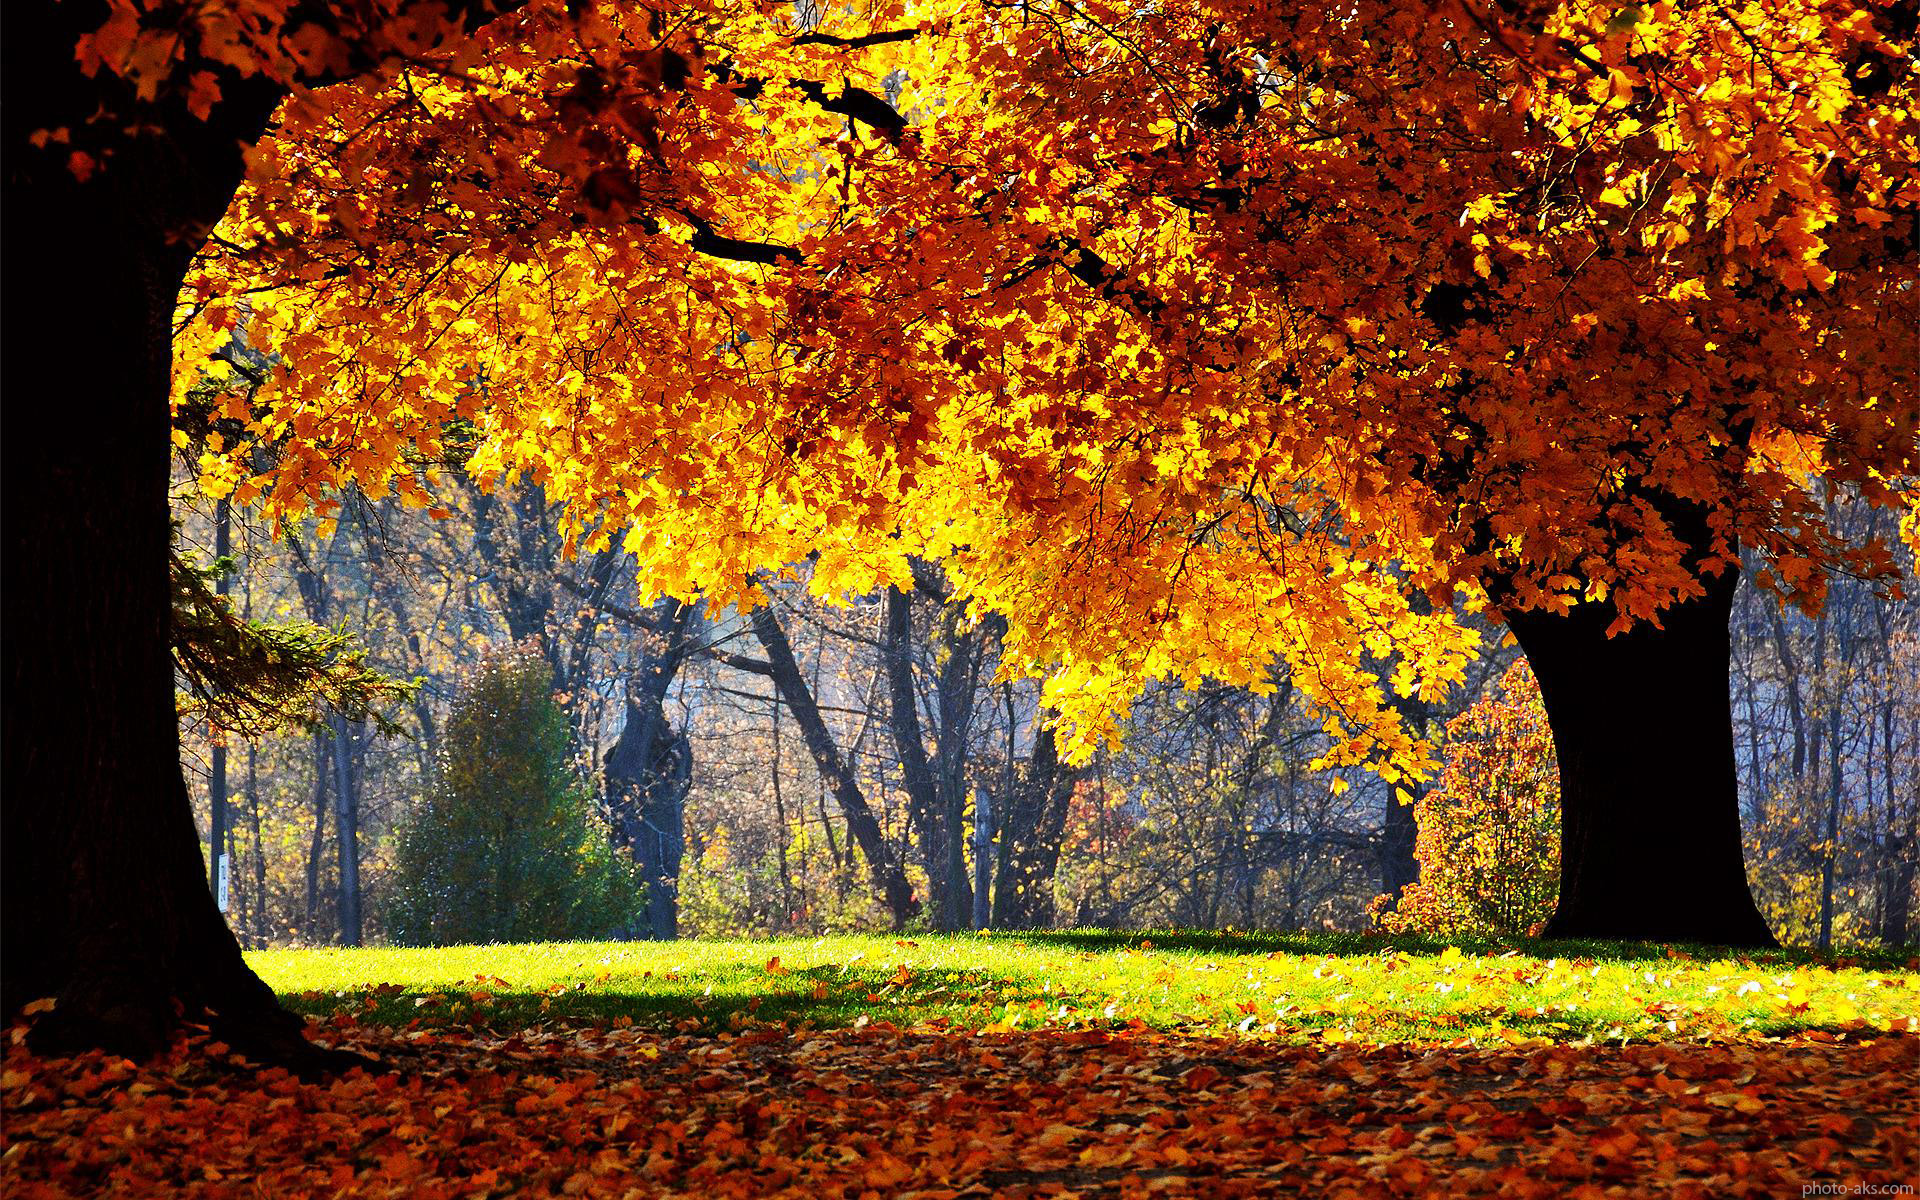 http://pic.photo-aks.com/photo/nature/season/autumn/large/golden_autumn_tree.jpg